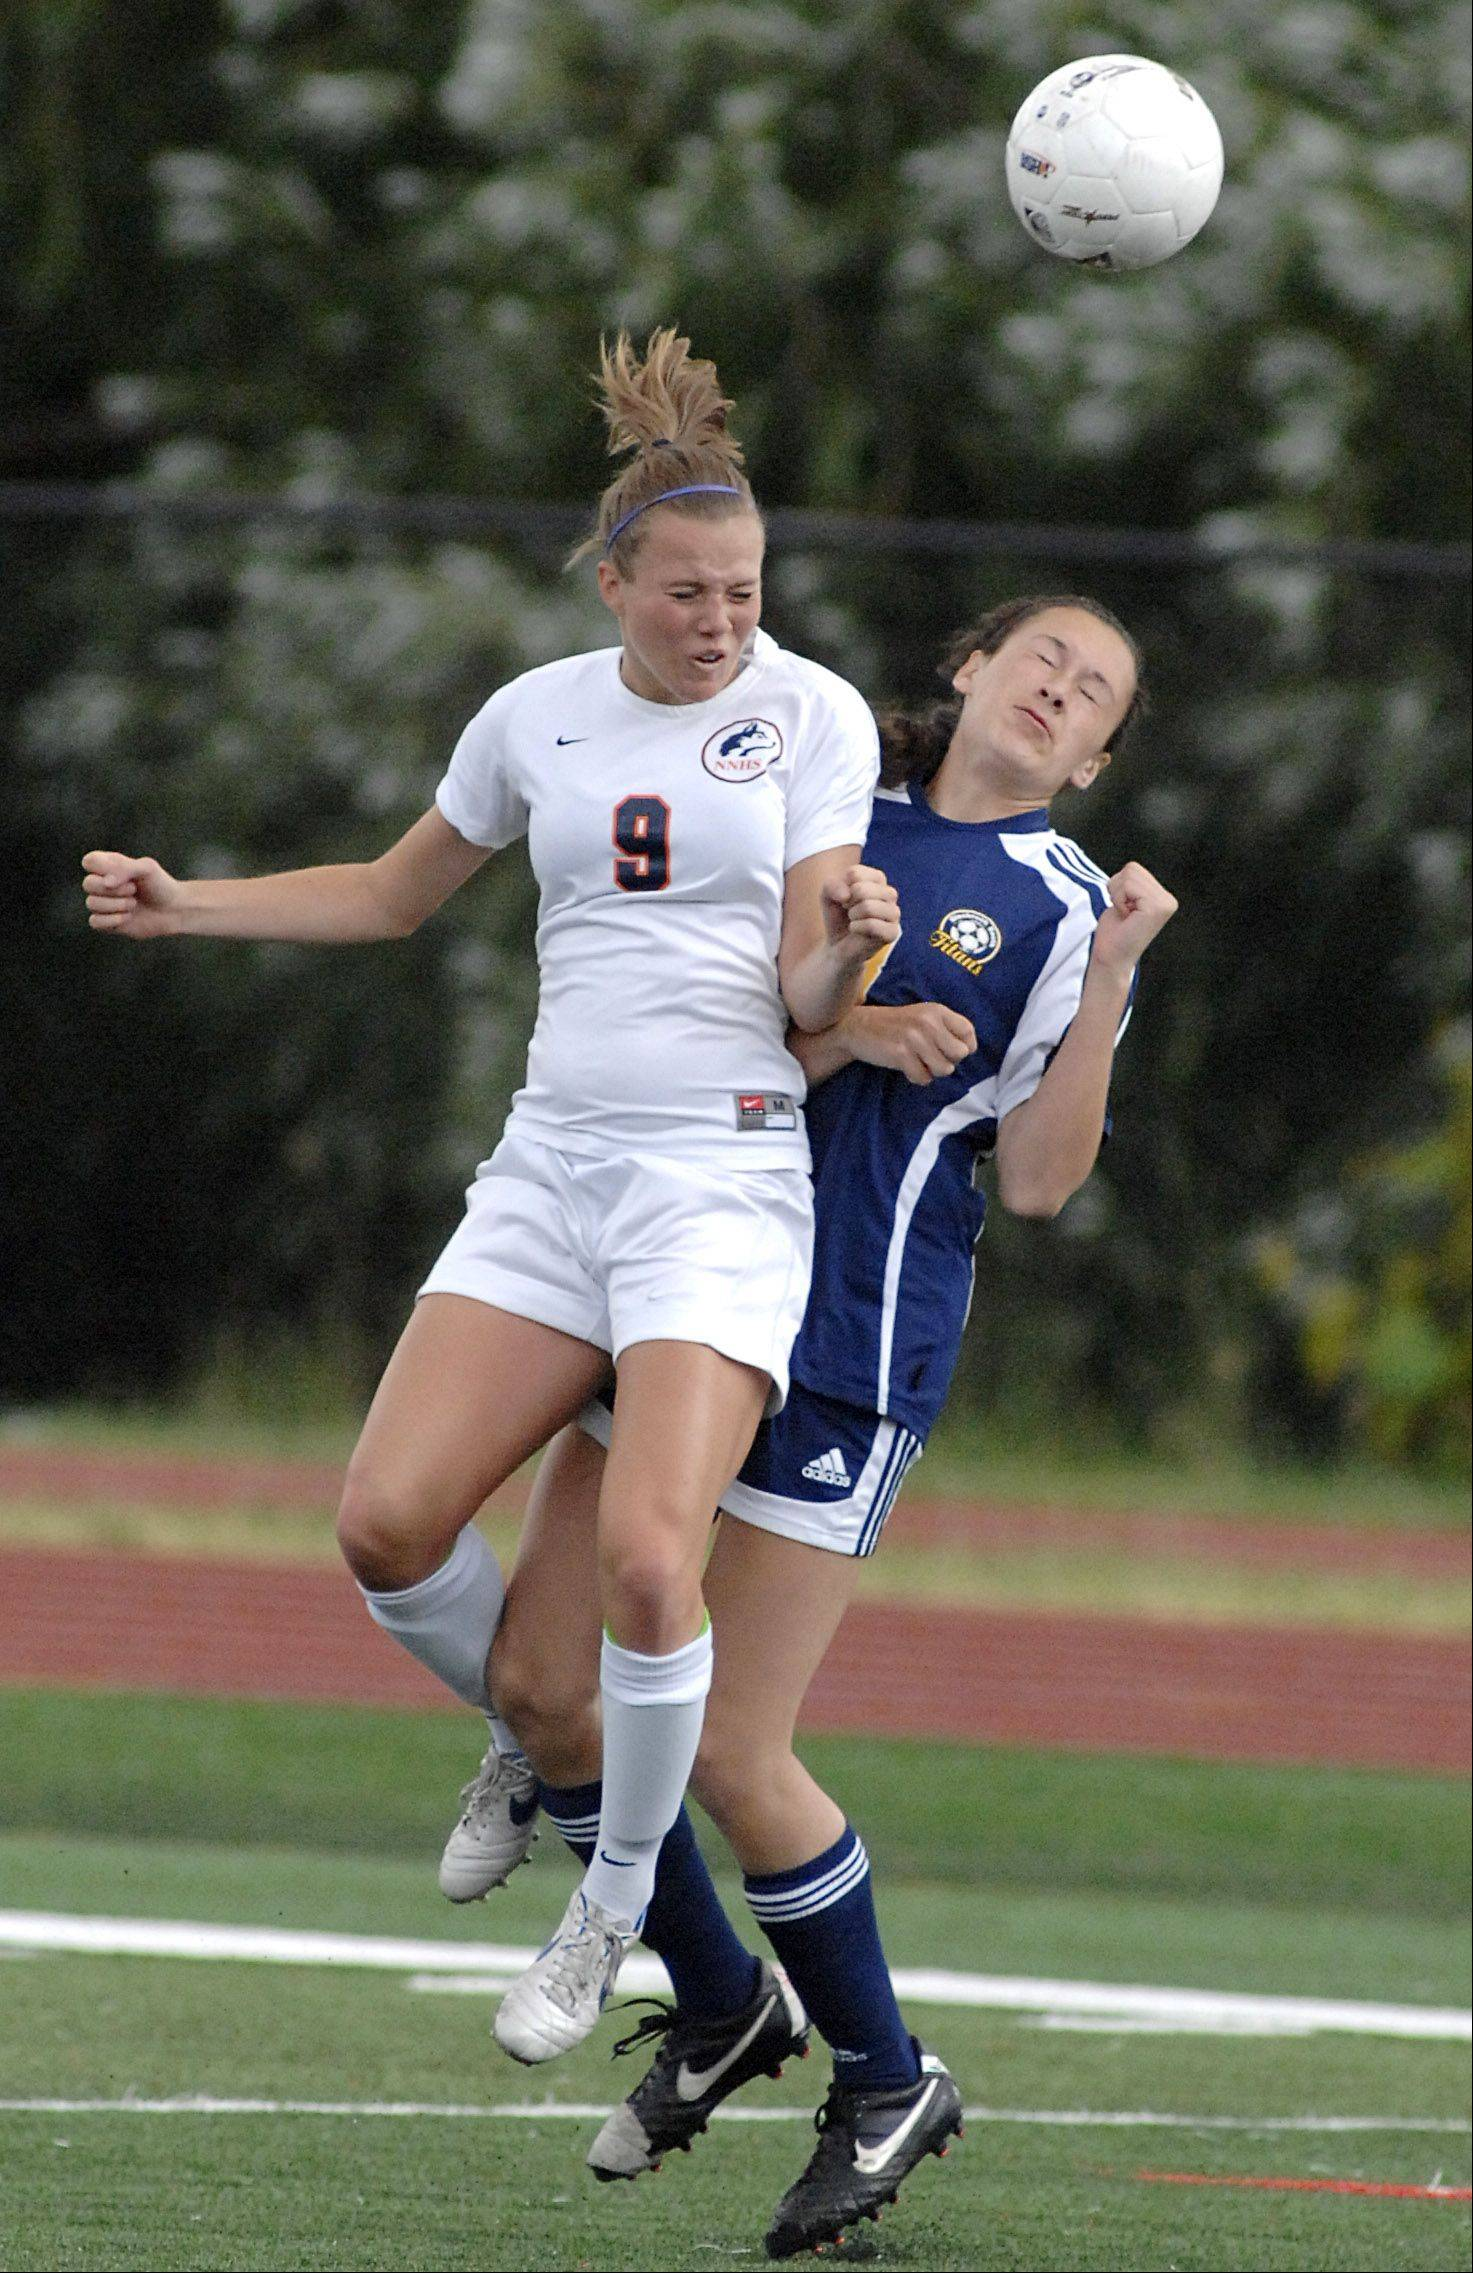 Glenbrook South's Nicole Sroubek collides with Naperville North's Jen Korn.